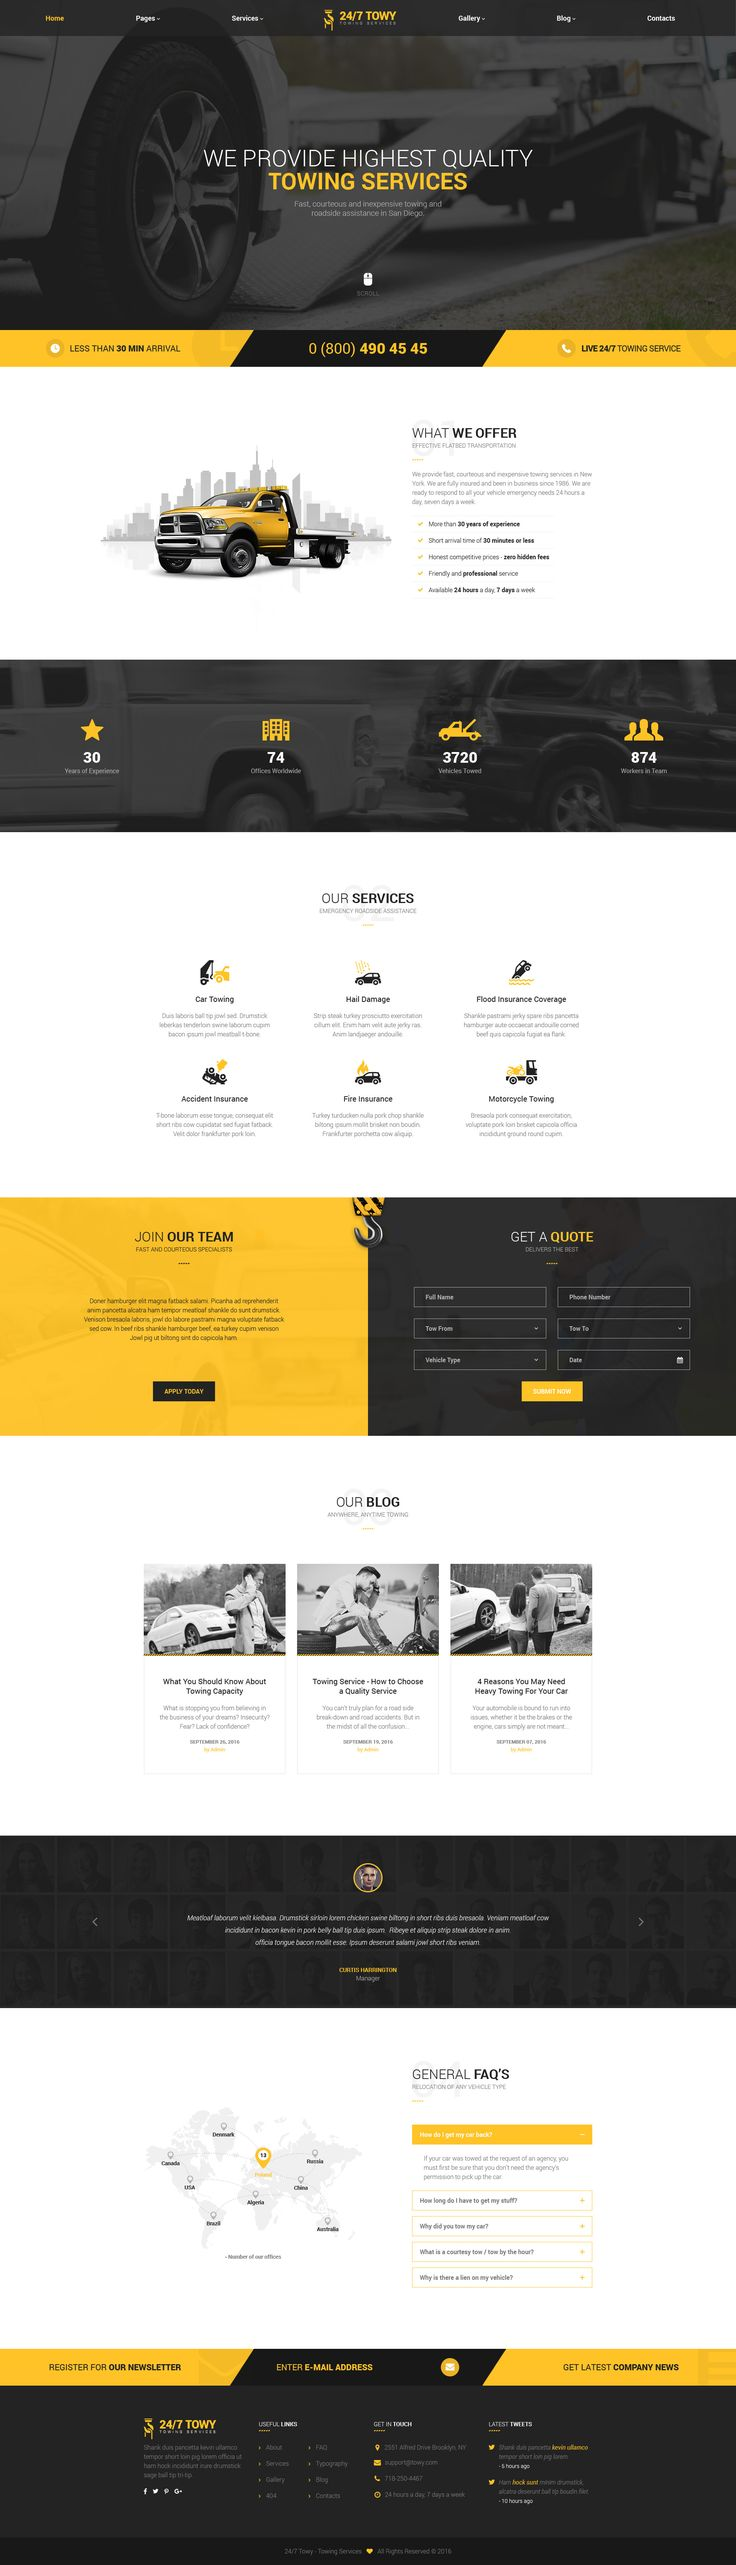 Towy - Emergency Auto Towing and Roadside Assistance Service PSD Template • Download ➝ https://themeforest.net/item/towy-emergency-auto-towing-and-roadside-assistance-service-psd-template/18237613?ref=pxcr